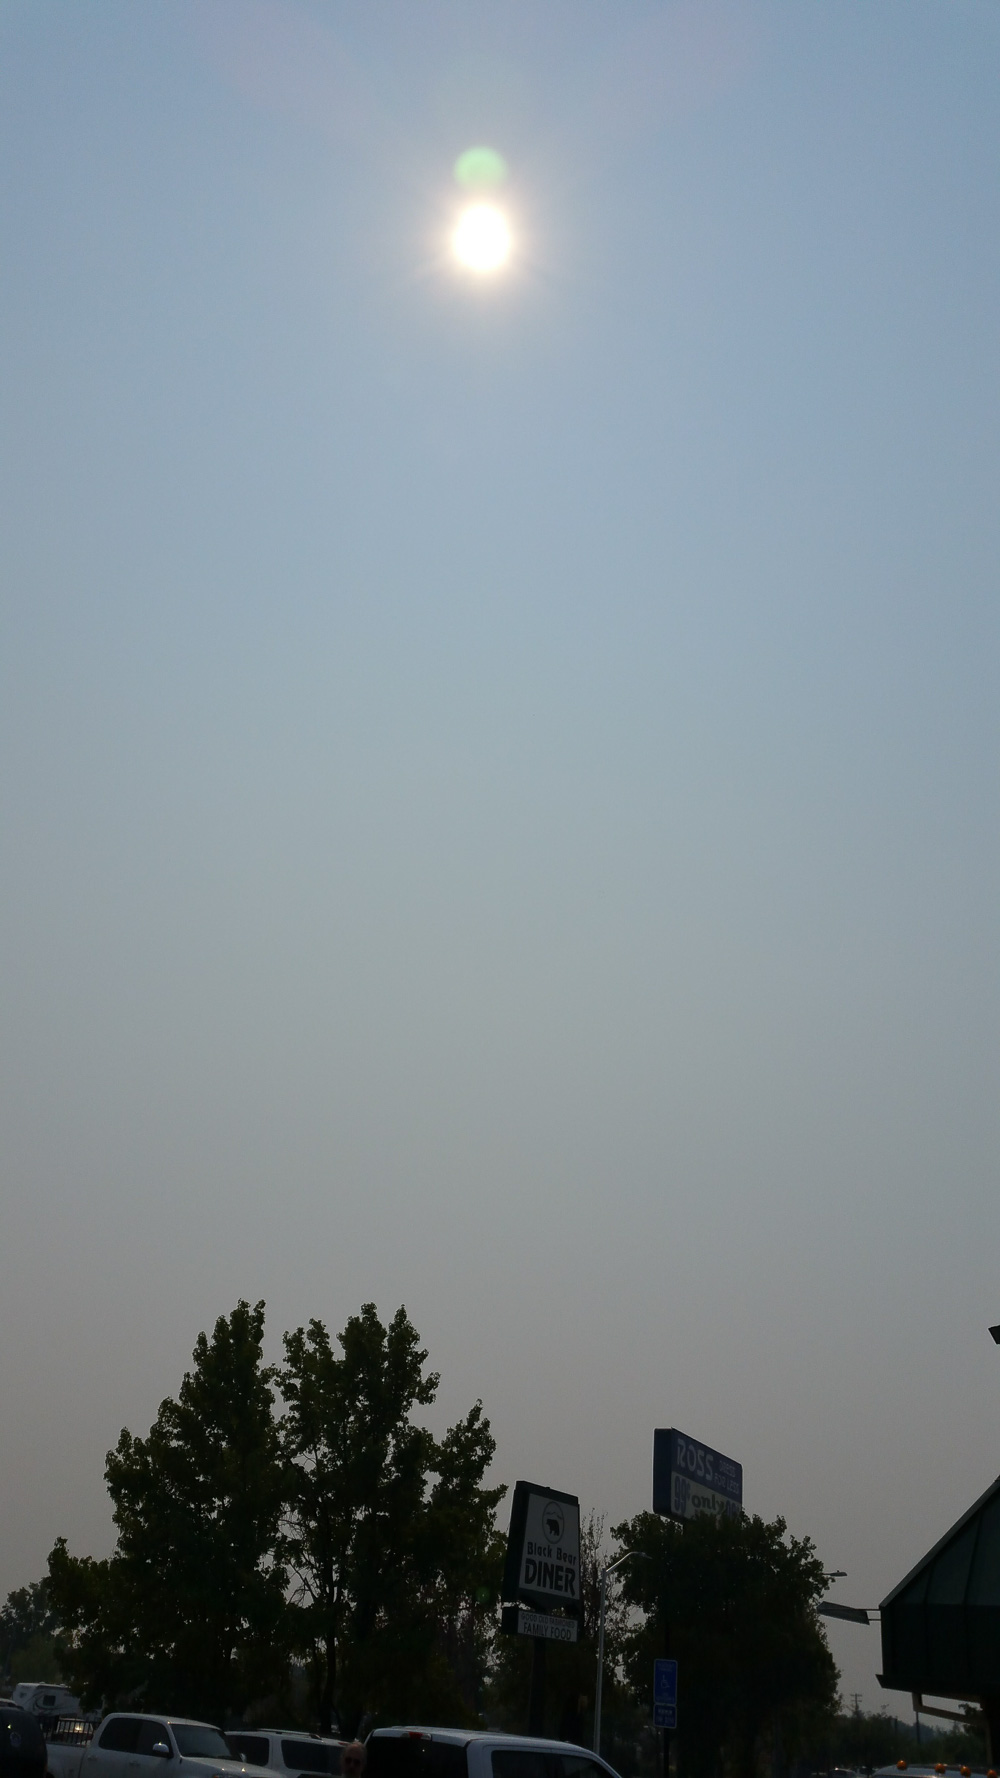 Smokey overcast outside  in Redding, CA on drive up to Eugene the day before the solar eclipse.